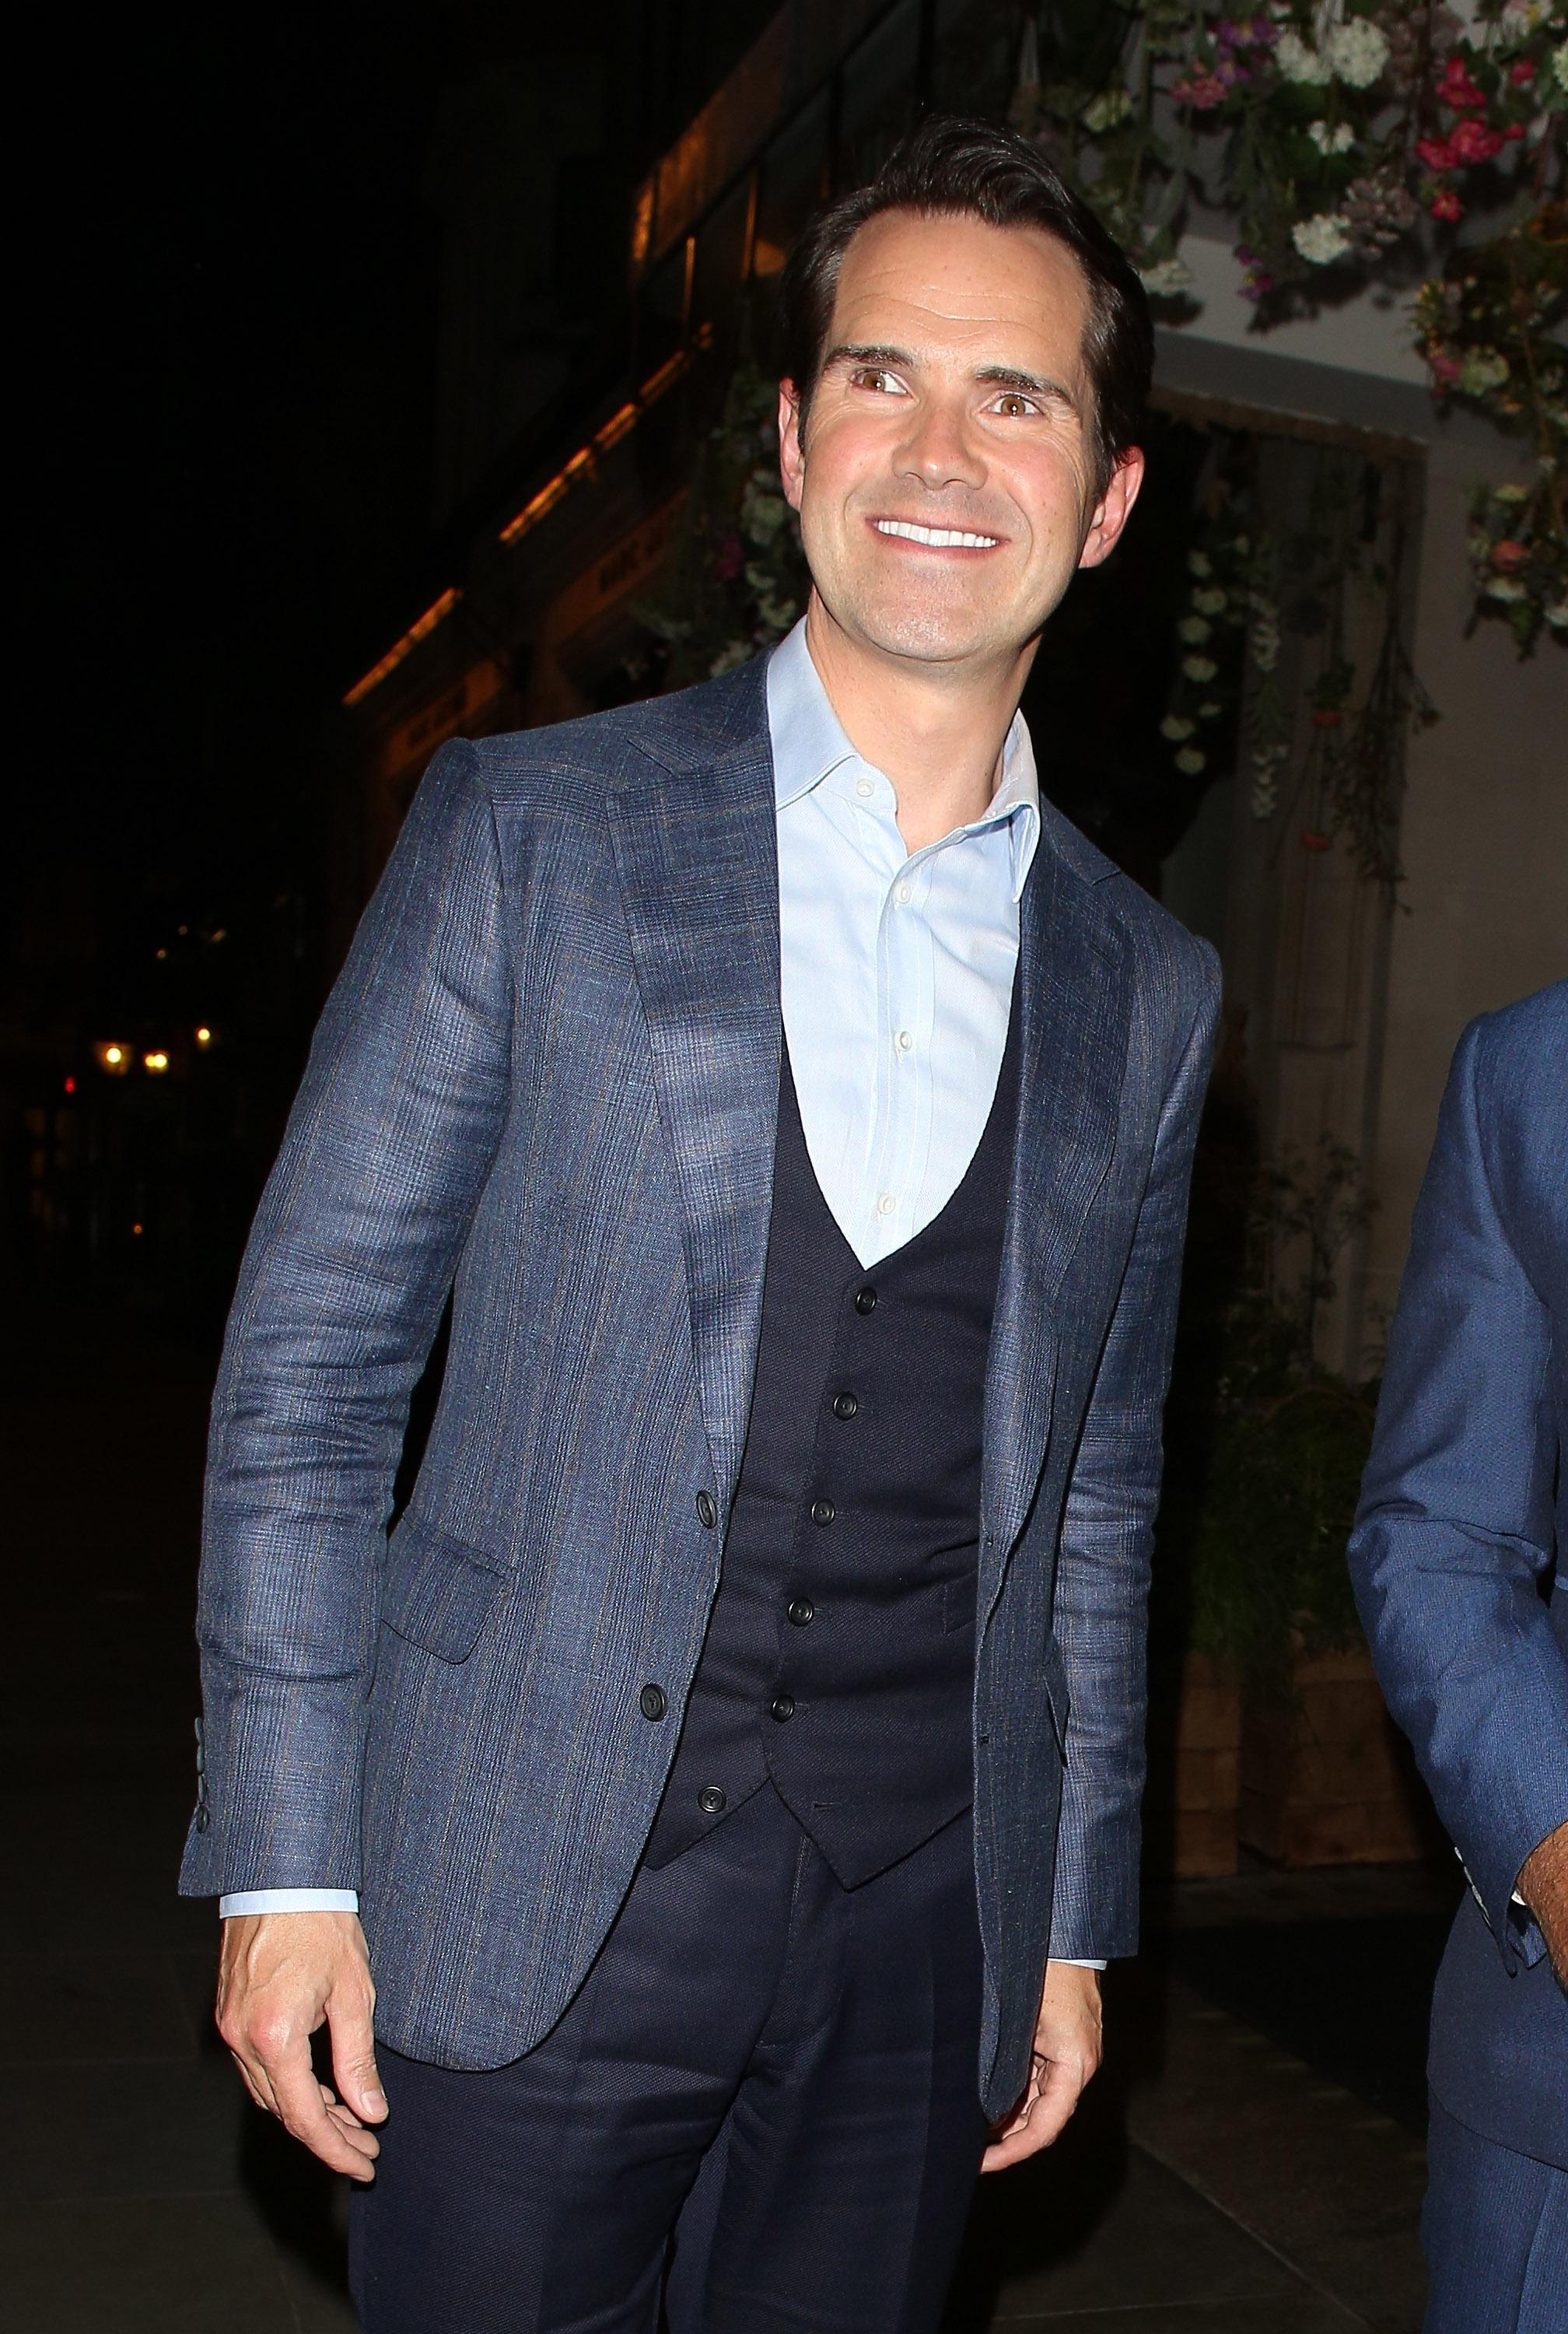 What is Jimmy Carr's net worth, is the comedian married and is he on tour in the UK in 2018?